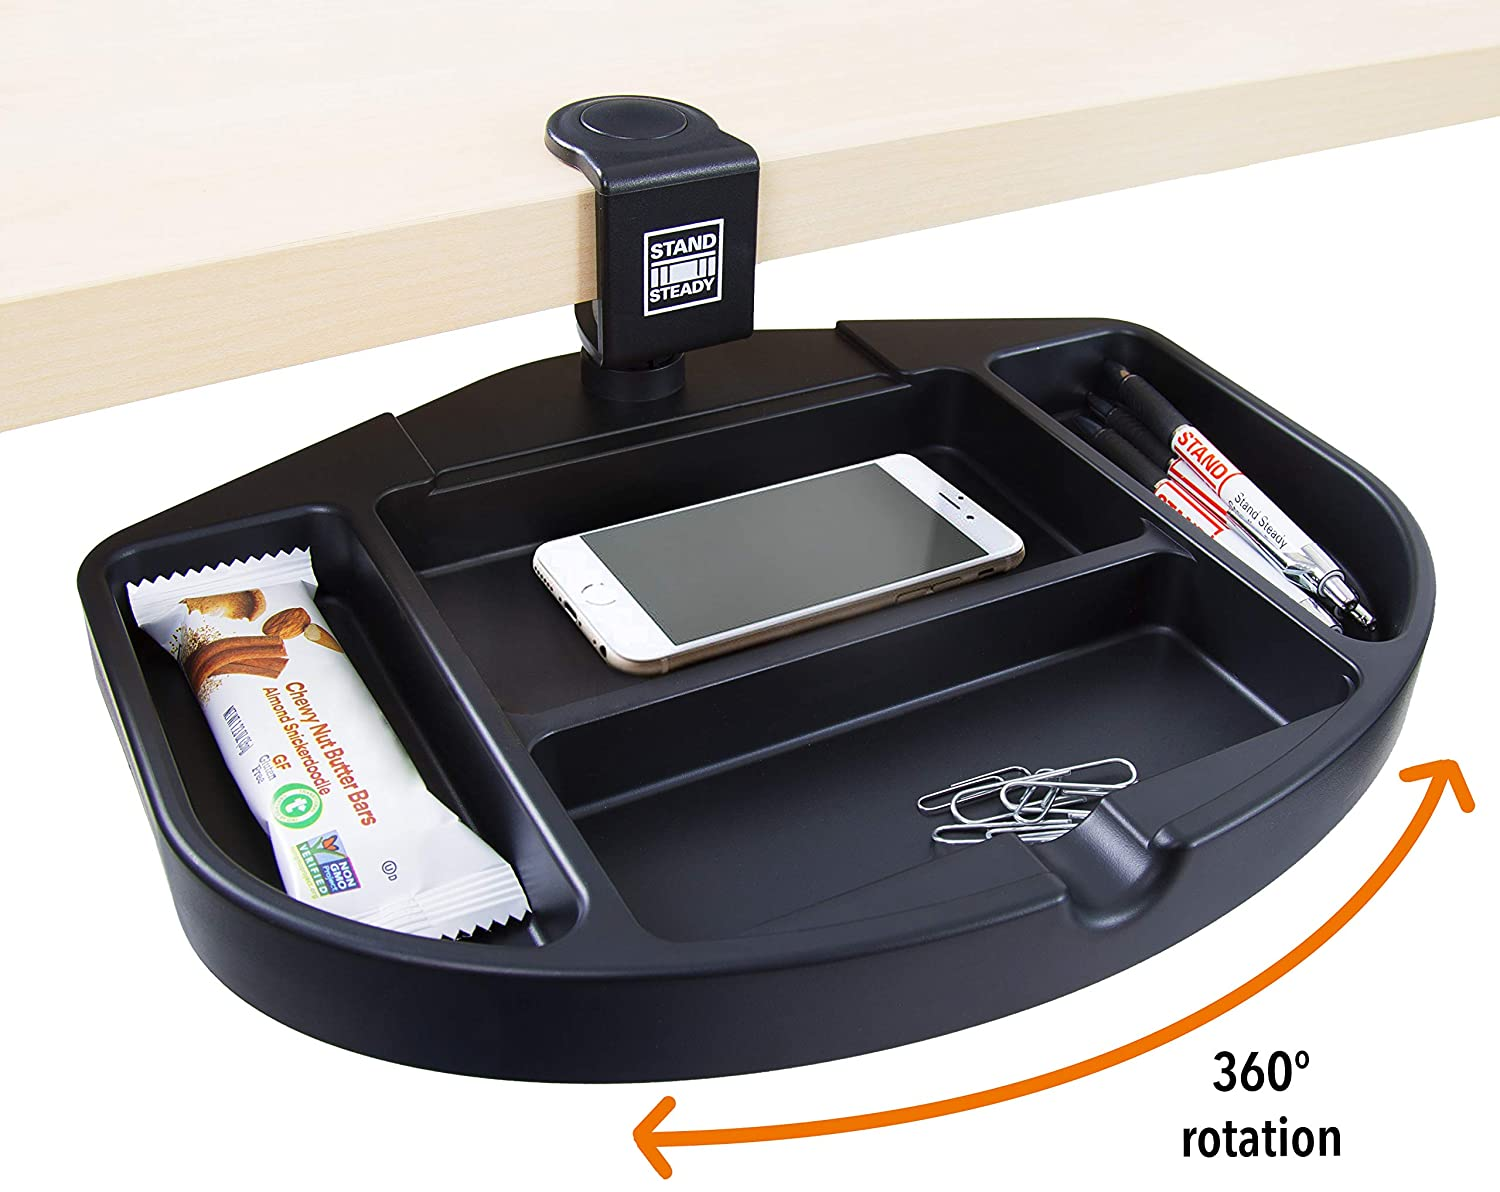 Black Stand Steady Original Desk Potato Clamp-On Swivel Pencil Drawer//Desk Organizer A Unique Desk Drawer Organizer That Provides Under Desk Storage for Pens and Sticky Notes